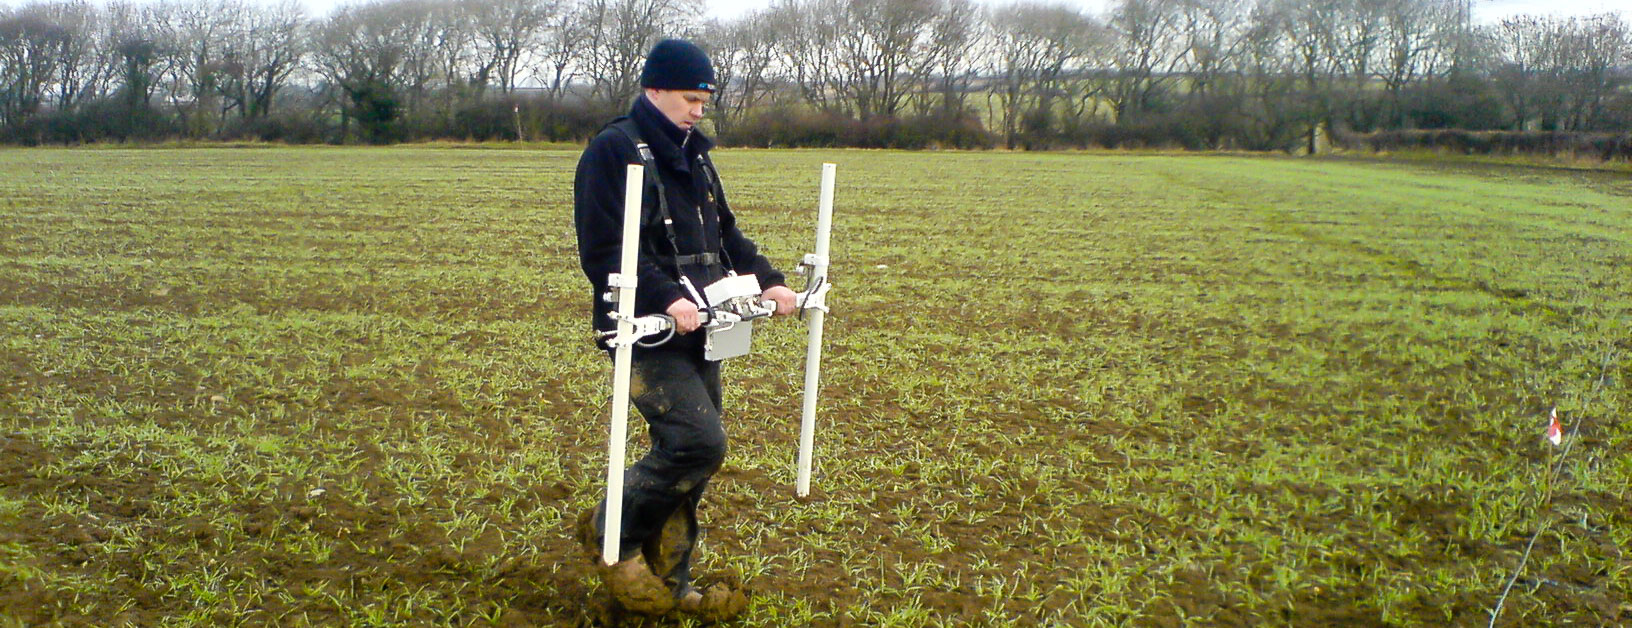 Magnetic gradiometer survey targeting archaeology